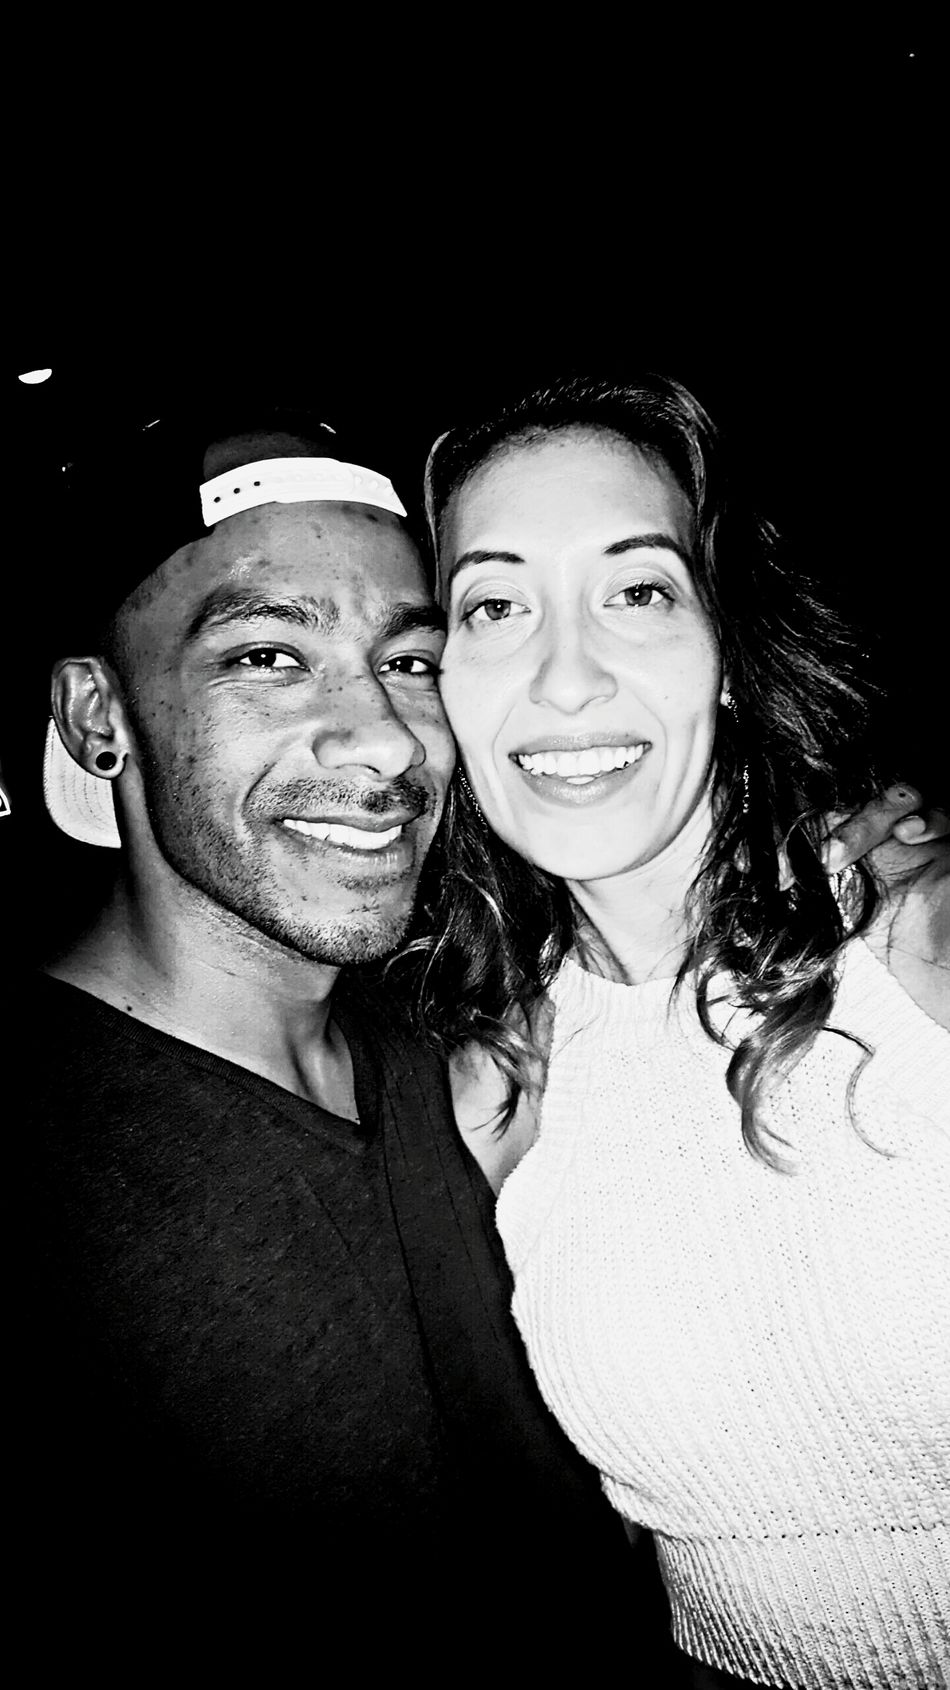 Just beautiful. Blackandwhite Real People Happiness Togetherness Two People Headshot Lifestyles Portrait Smiling People Dark Beautiful. Simplicity LoveMyWork Myphotography. Growth Close-up Photooftheday Tranquility Mywork Growth. Solitude Photography. LIFE. Roots.